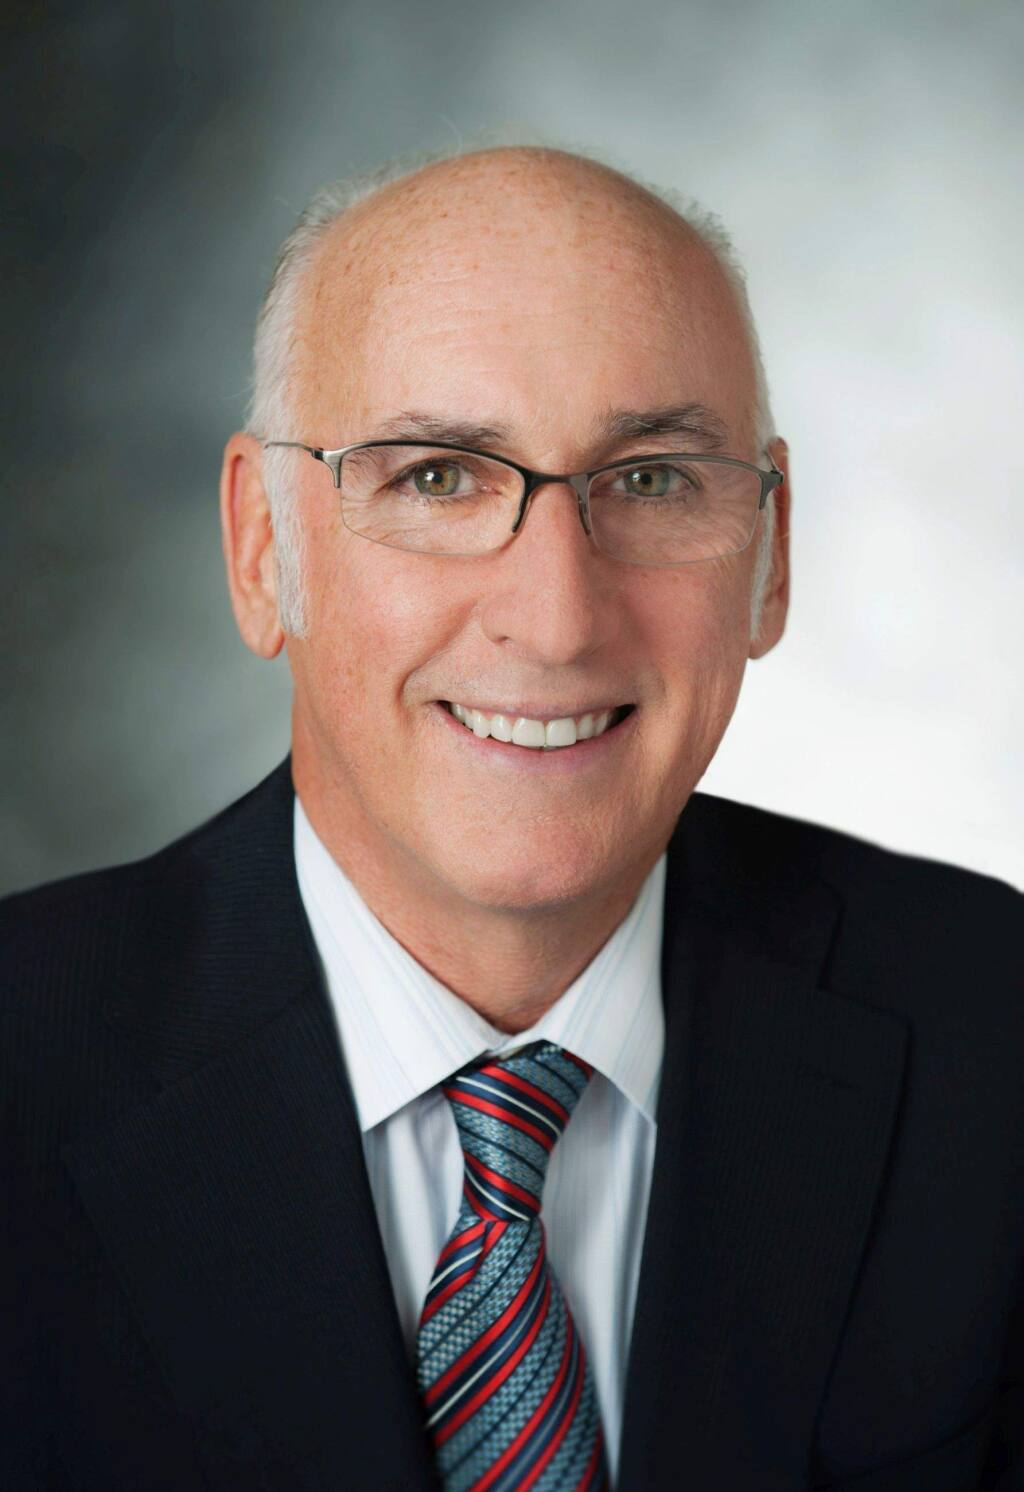 Lee Domanico, Chief Executive Officer, Marin General Hospital